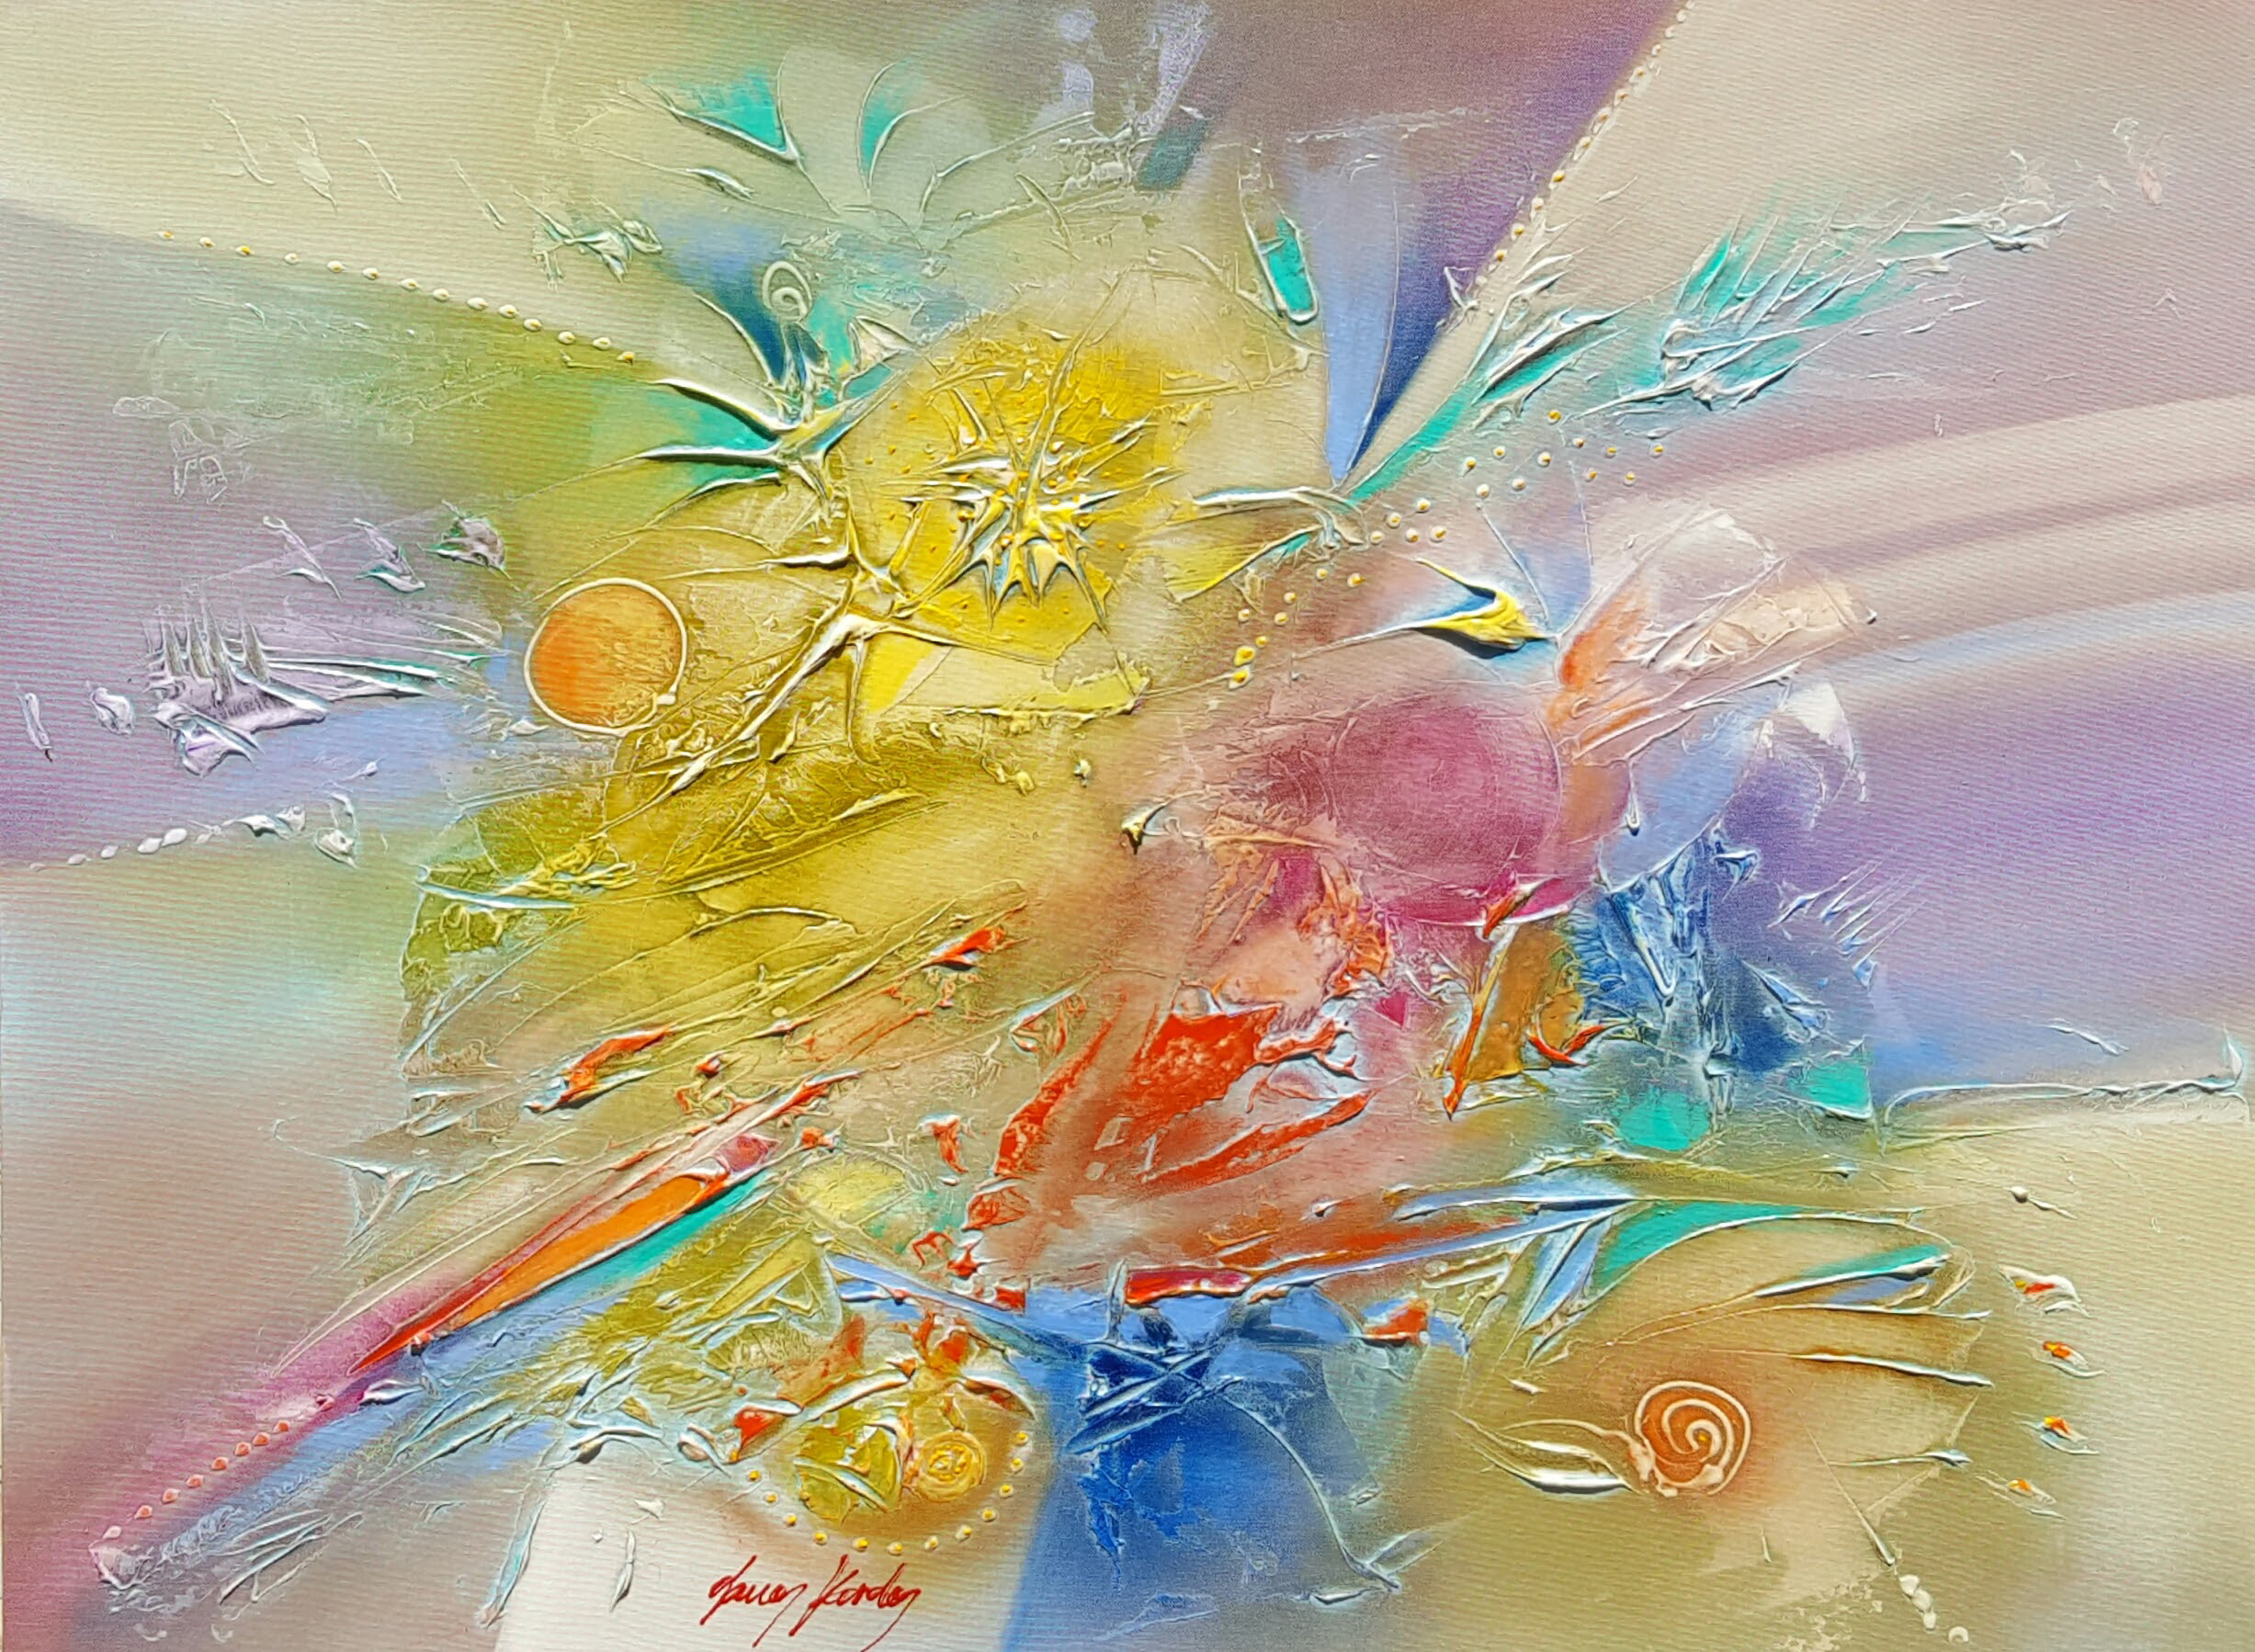 KARDOS ABSTRACT JOY 40 x 30 in